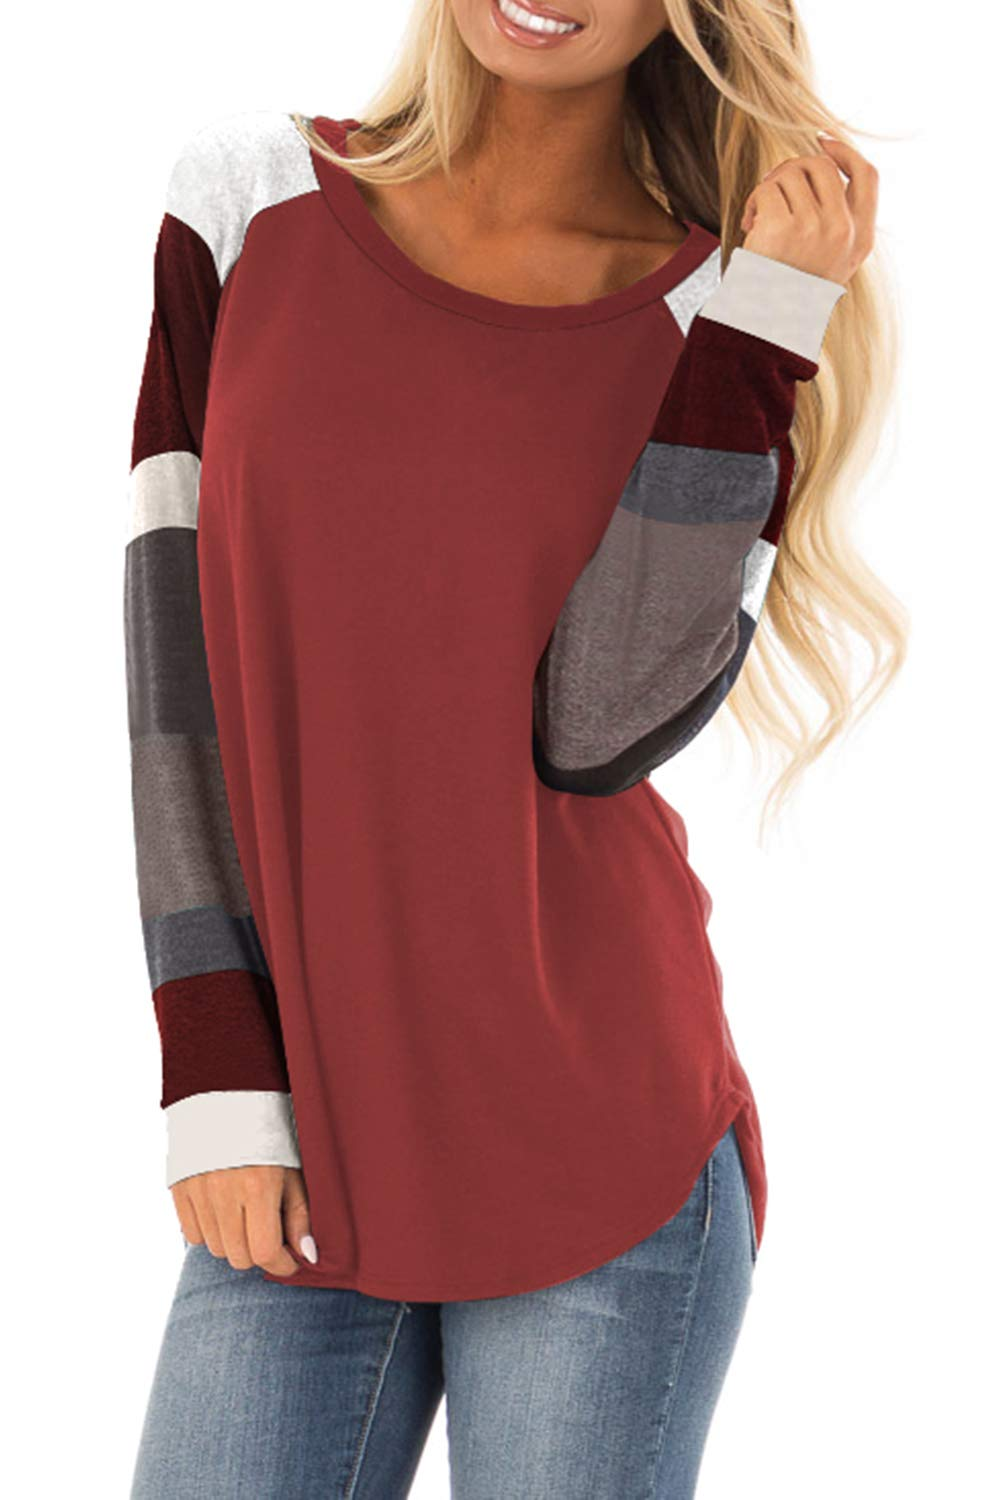 Lovezesent Women's Plus Size Crewneck Color Block Long Sleeve Blouses Tops Raglan Sleeve Loose Tunic Shirts for Juniors Red XL